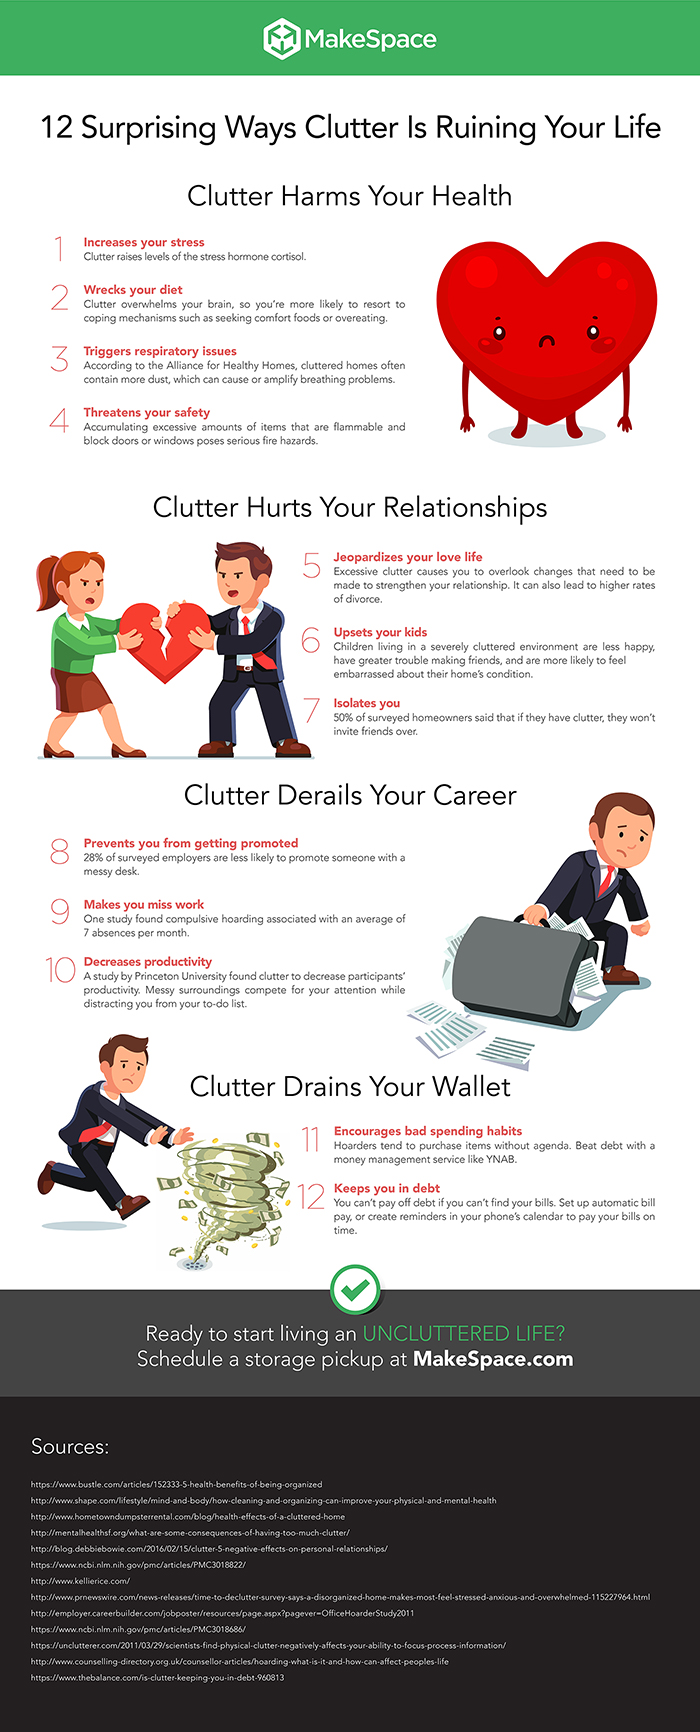 clutter-infographic-makespace-storage